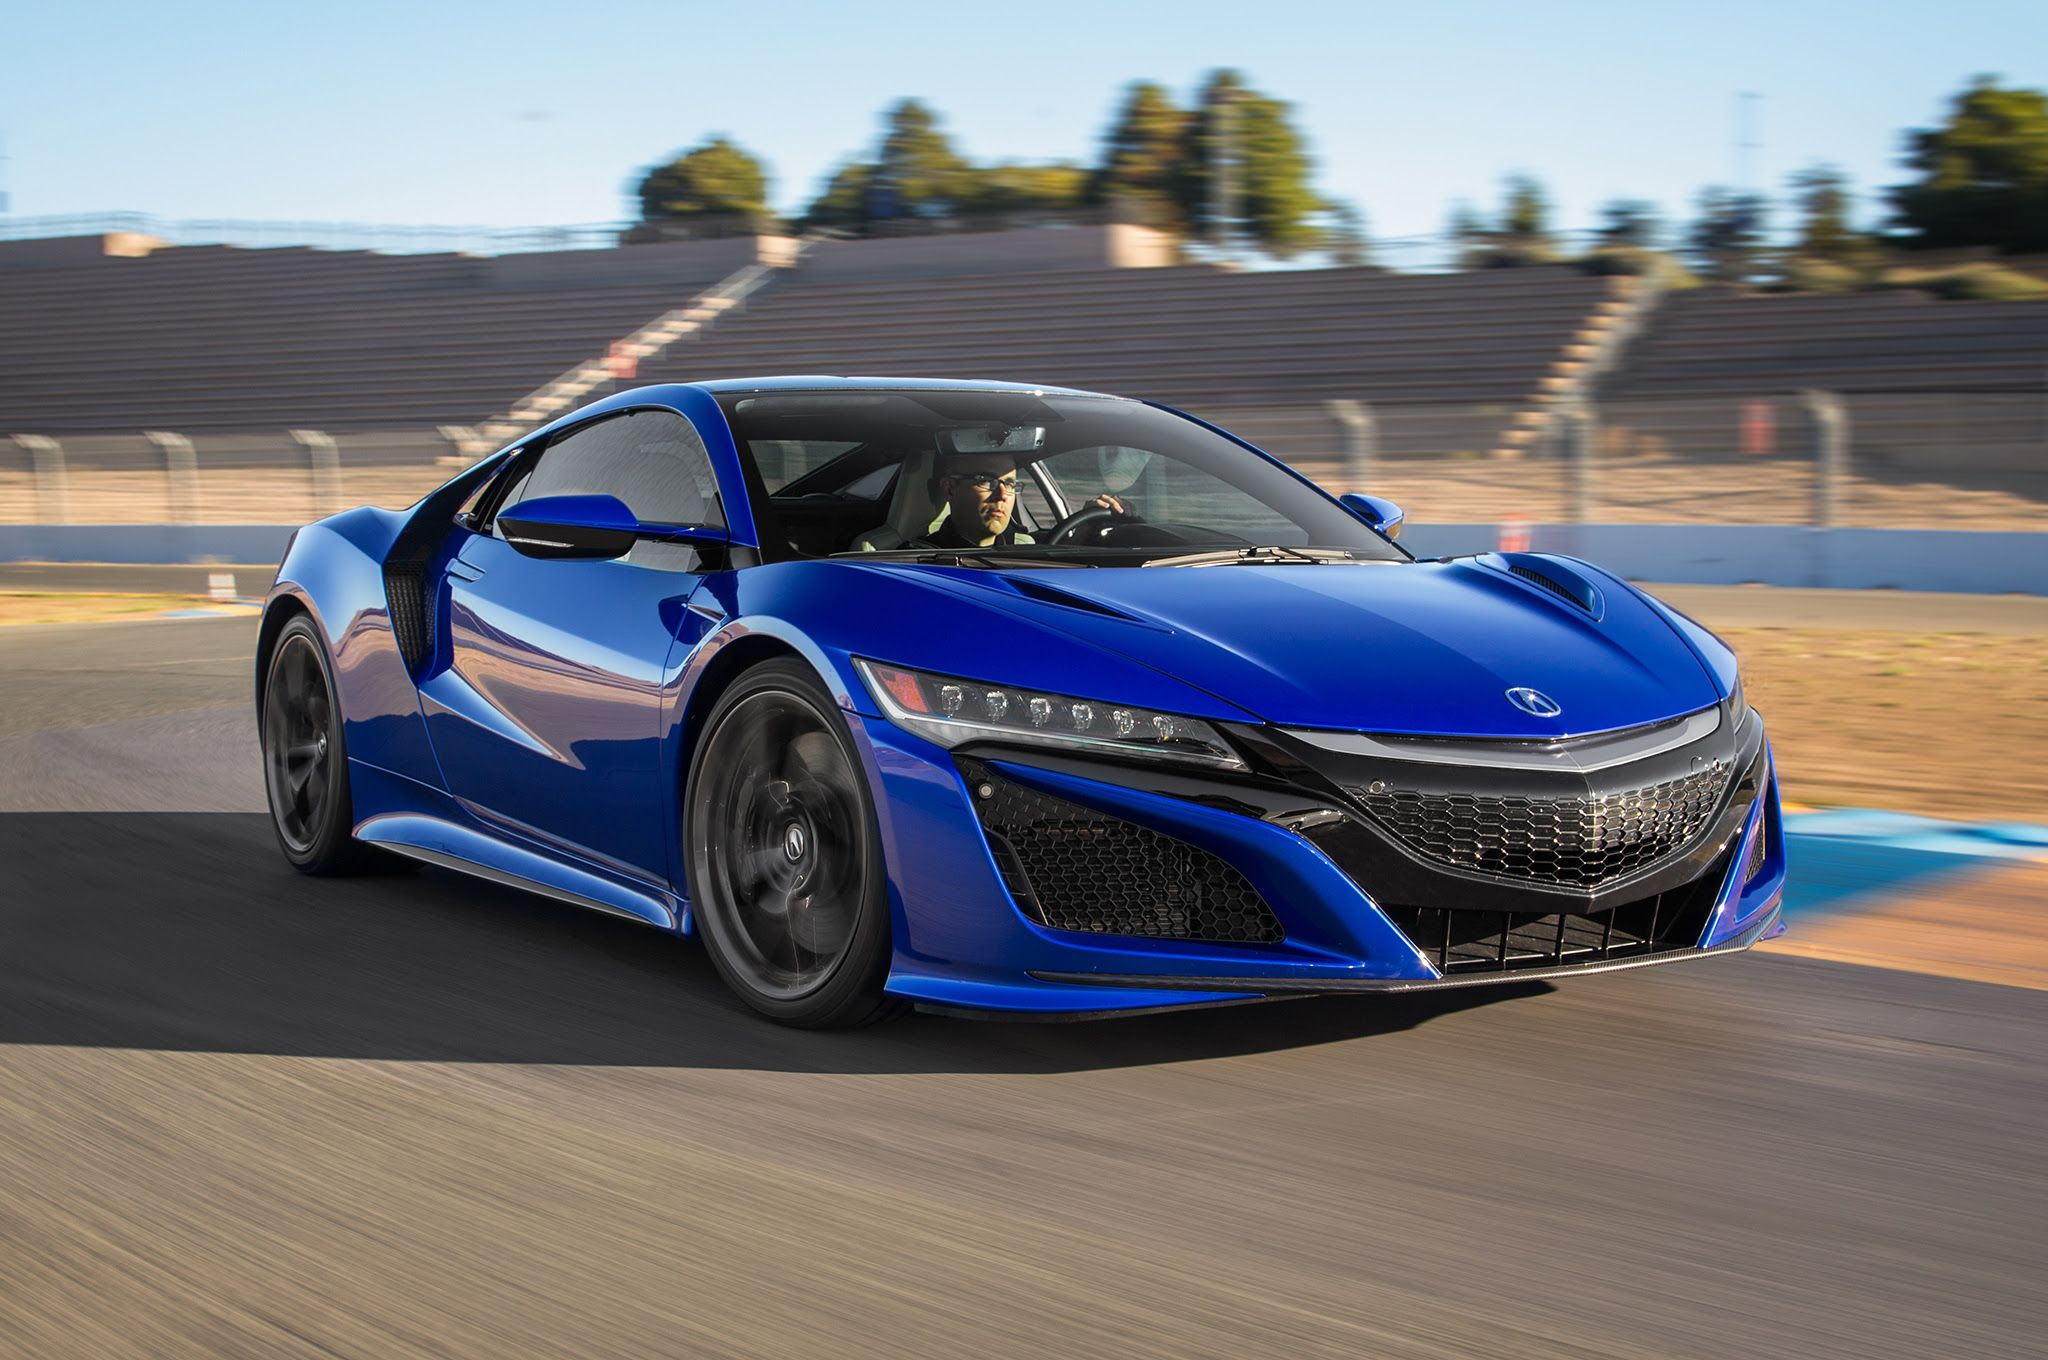 2017 Acura Nsx 2010 To Current Carz All Models And